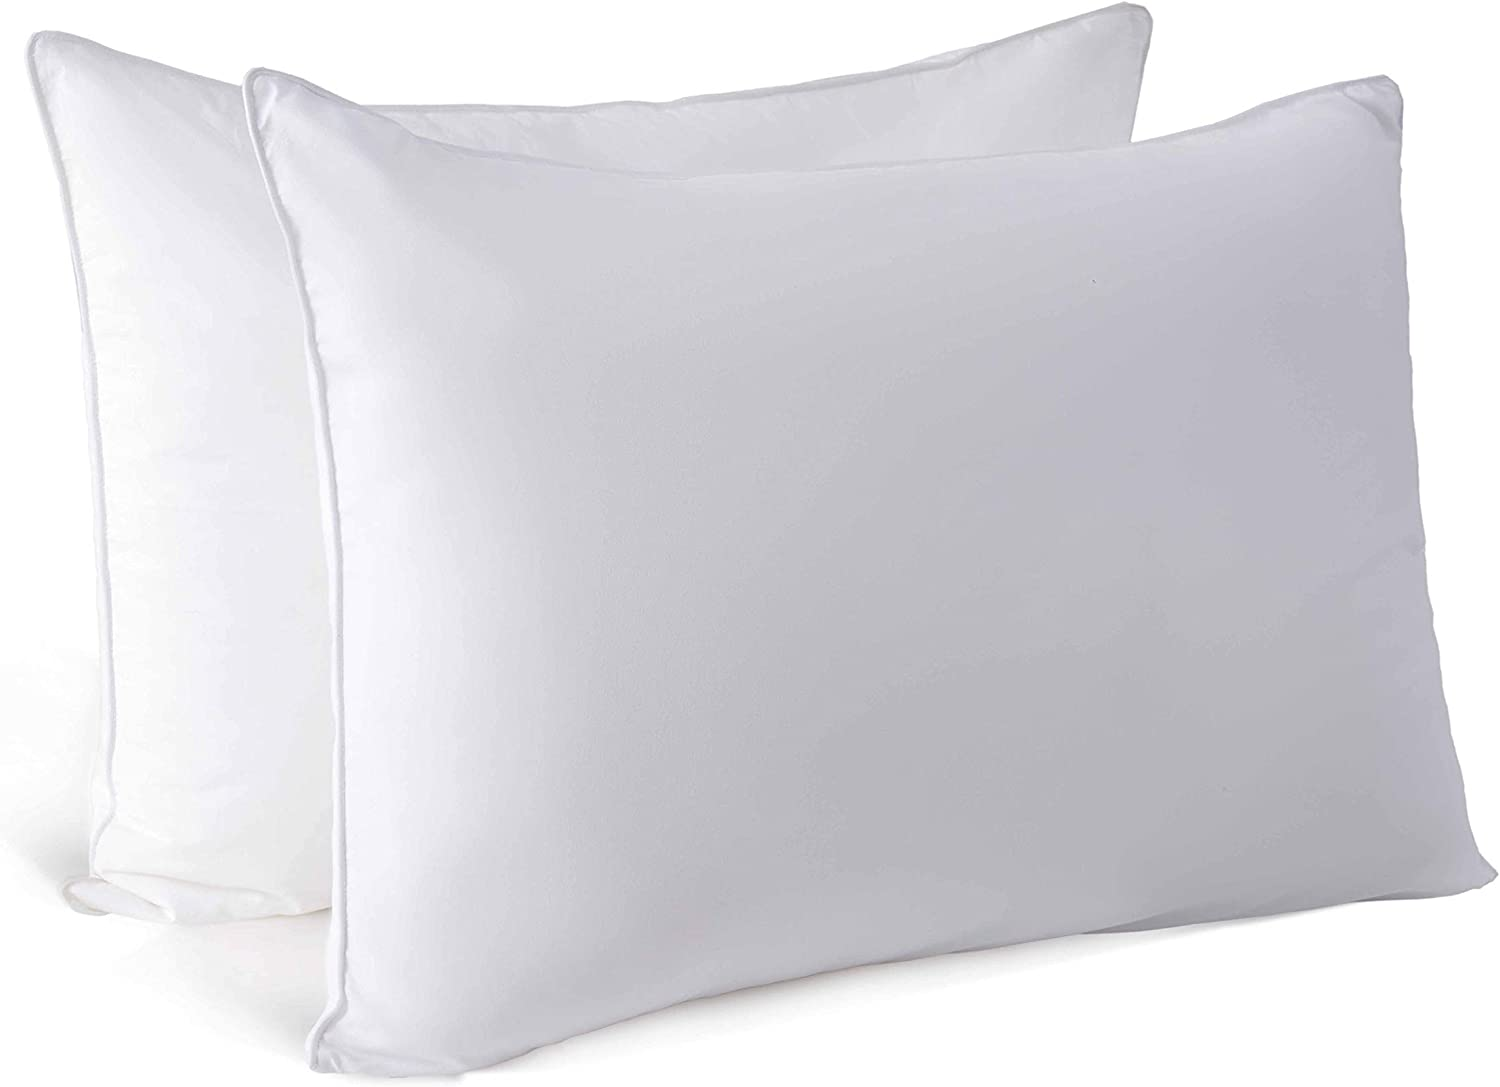 CHIXIN Bed Pillow for Sleeping | Luxury Hotel Pillows Set of 2 | Fluffy and Soft Pillows for Side and Back Sleeper | Standard, 2 Pack